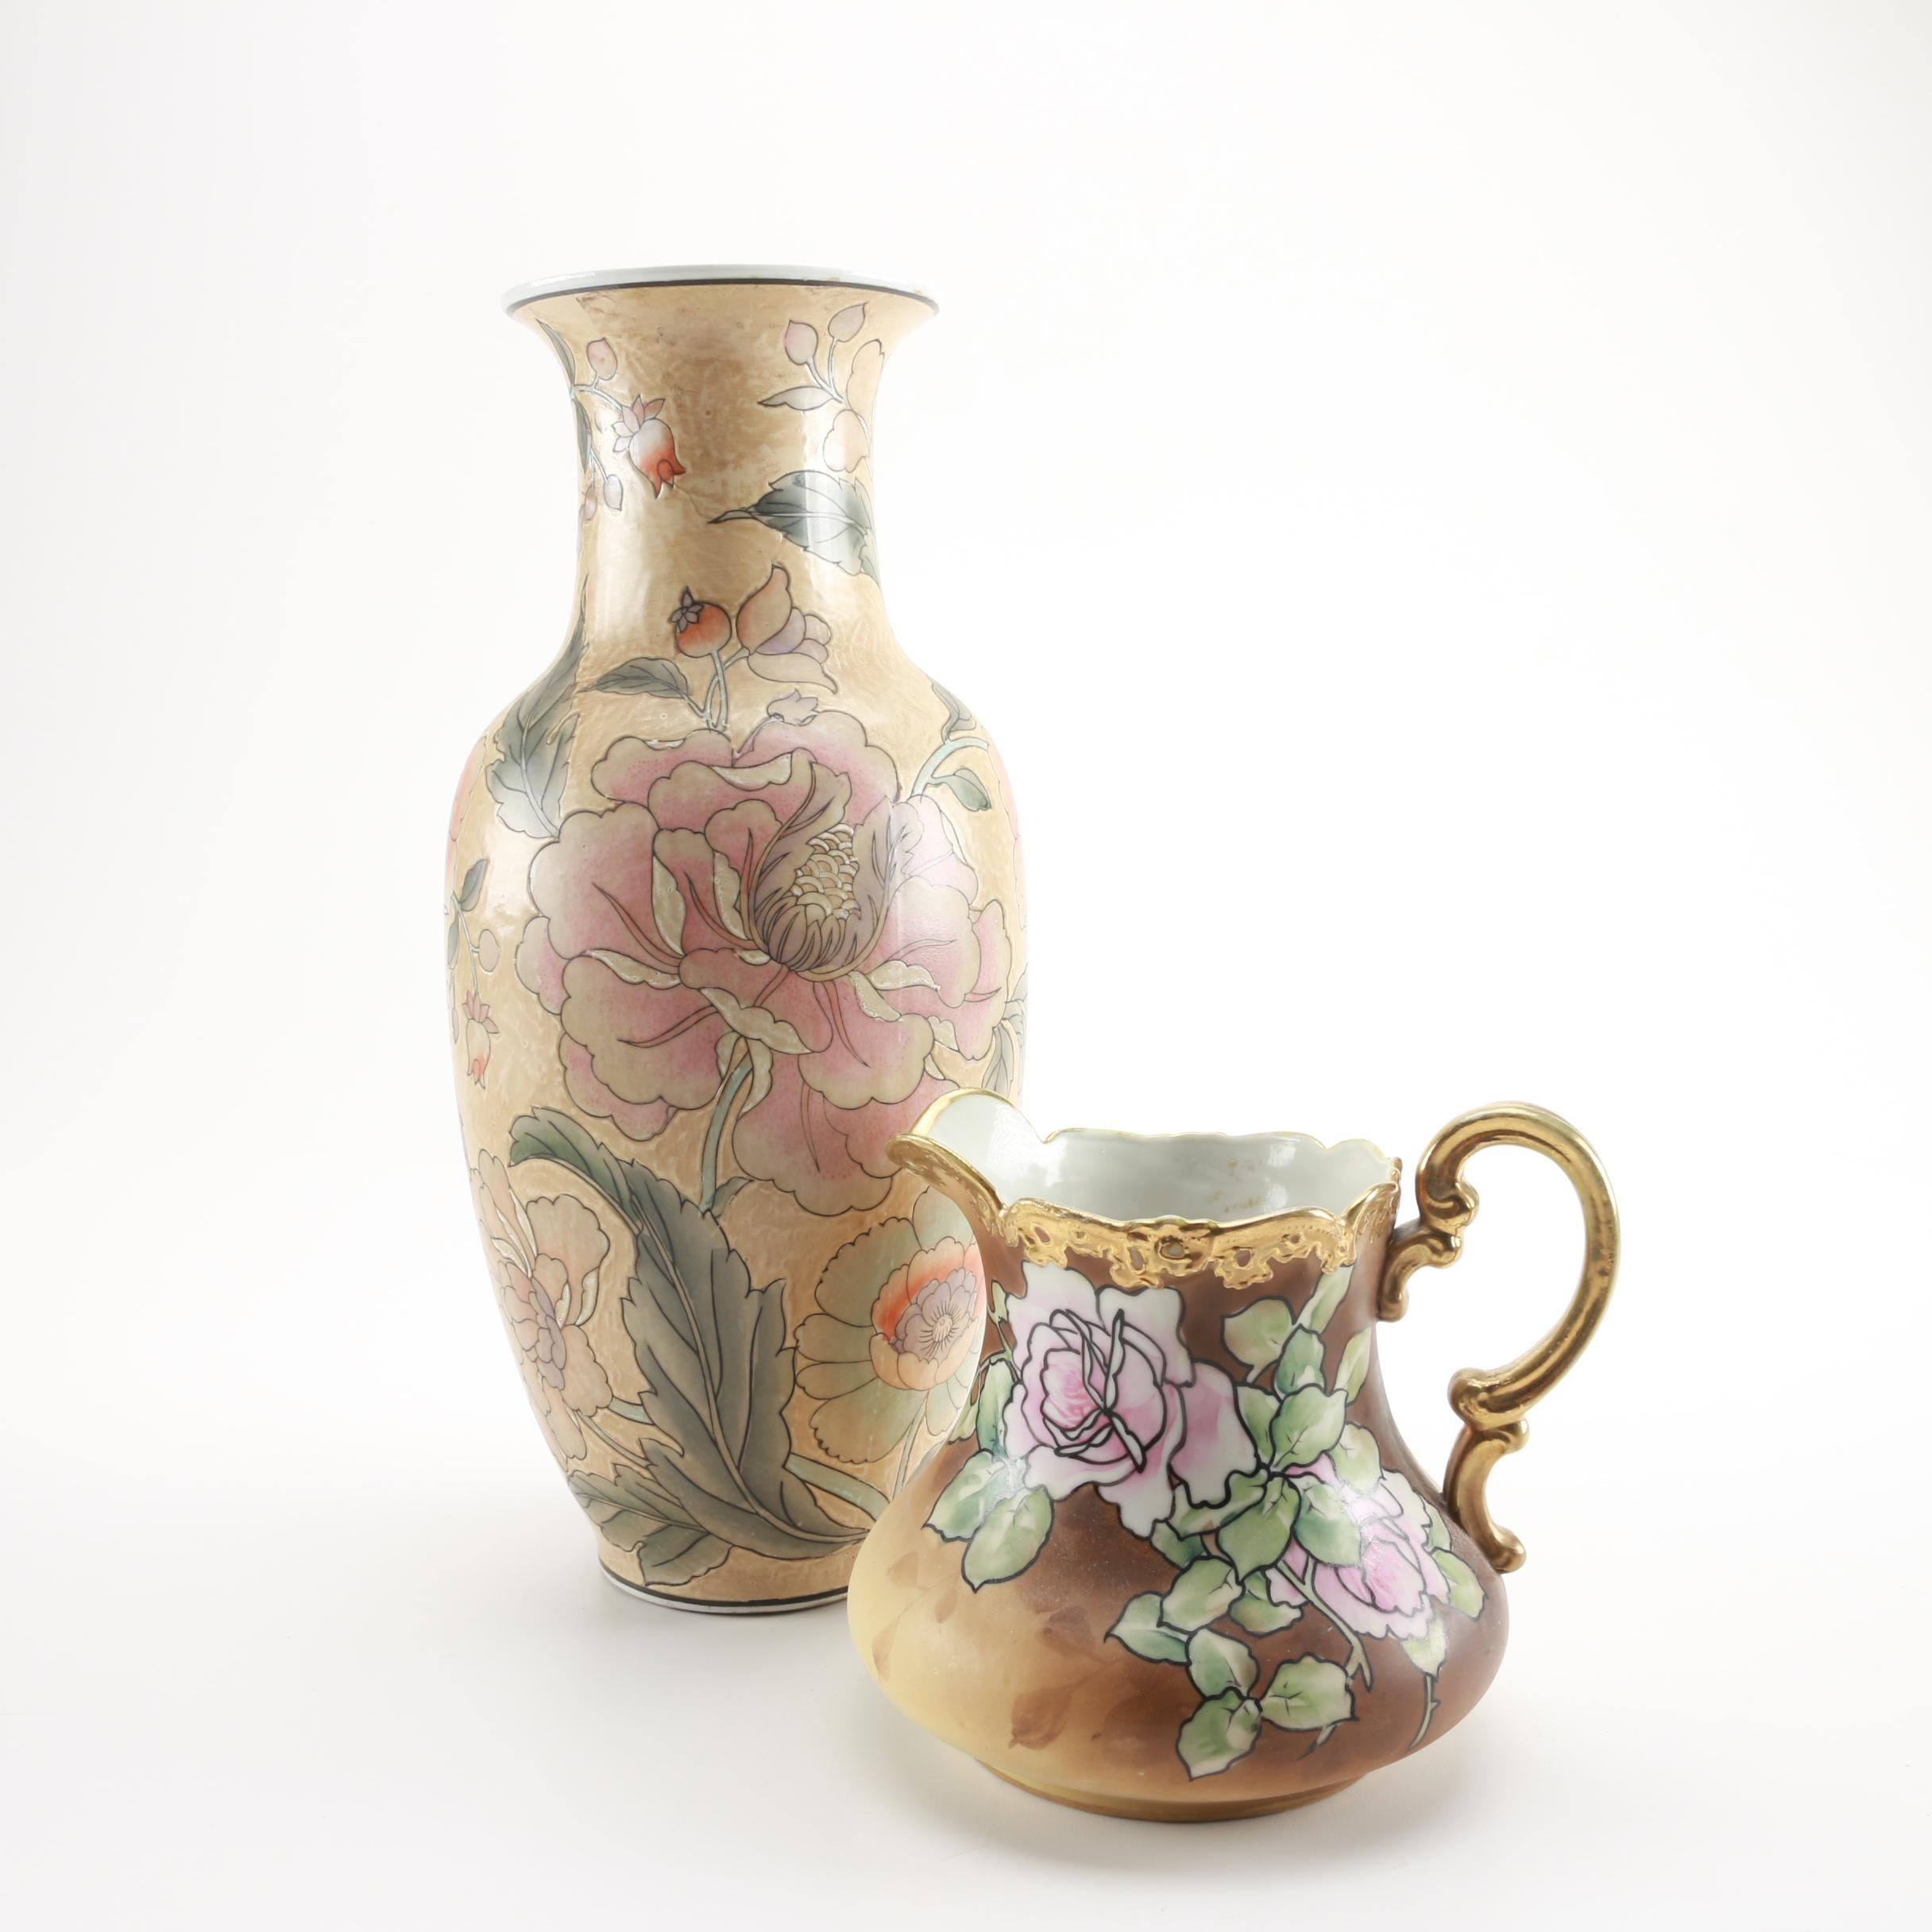 Ceramic Vase and Nippon Porcelain Pitcher with Floral Designs